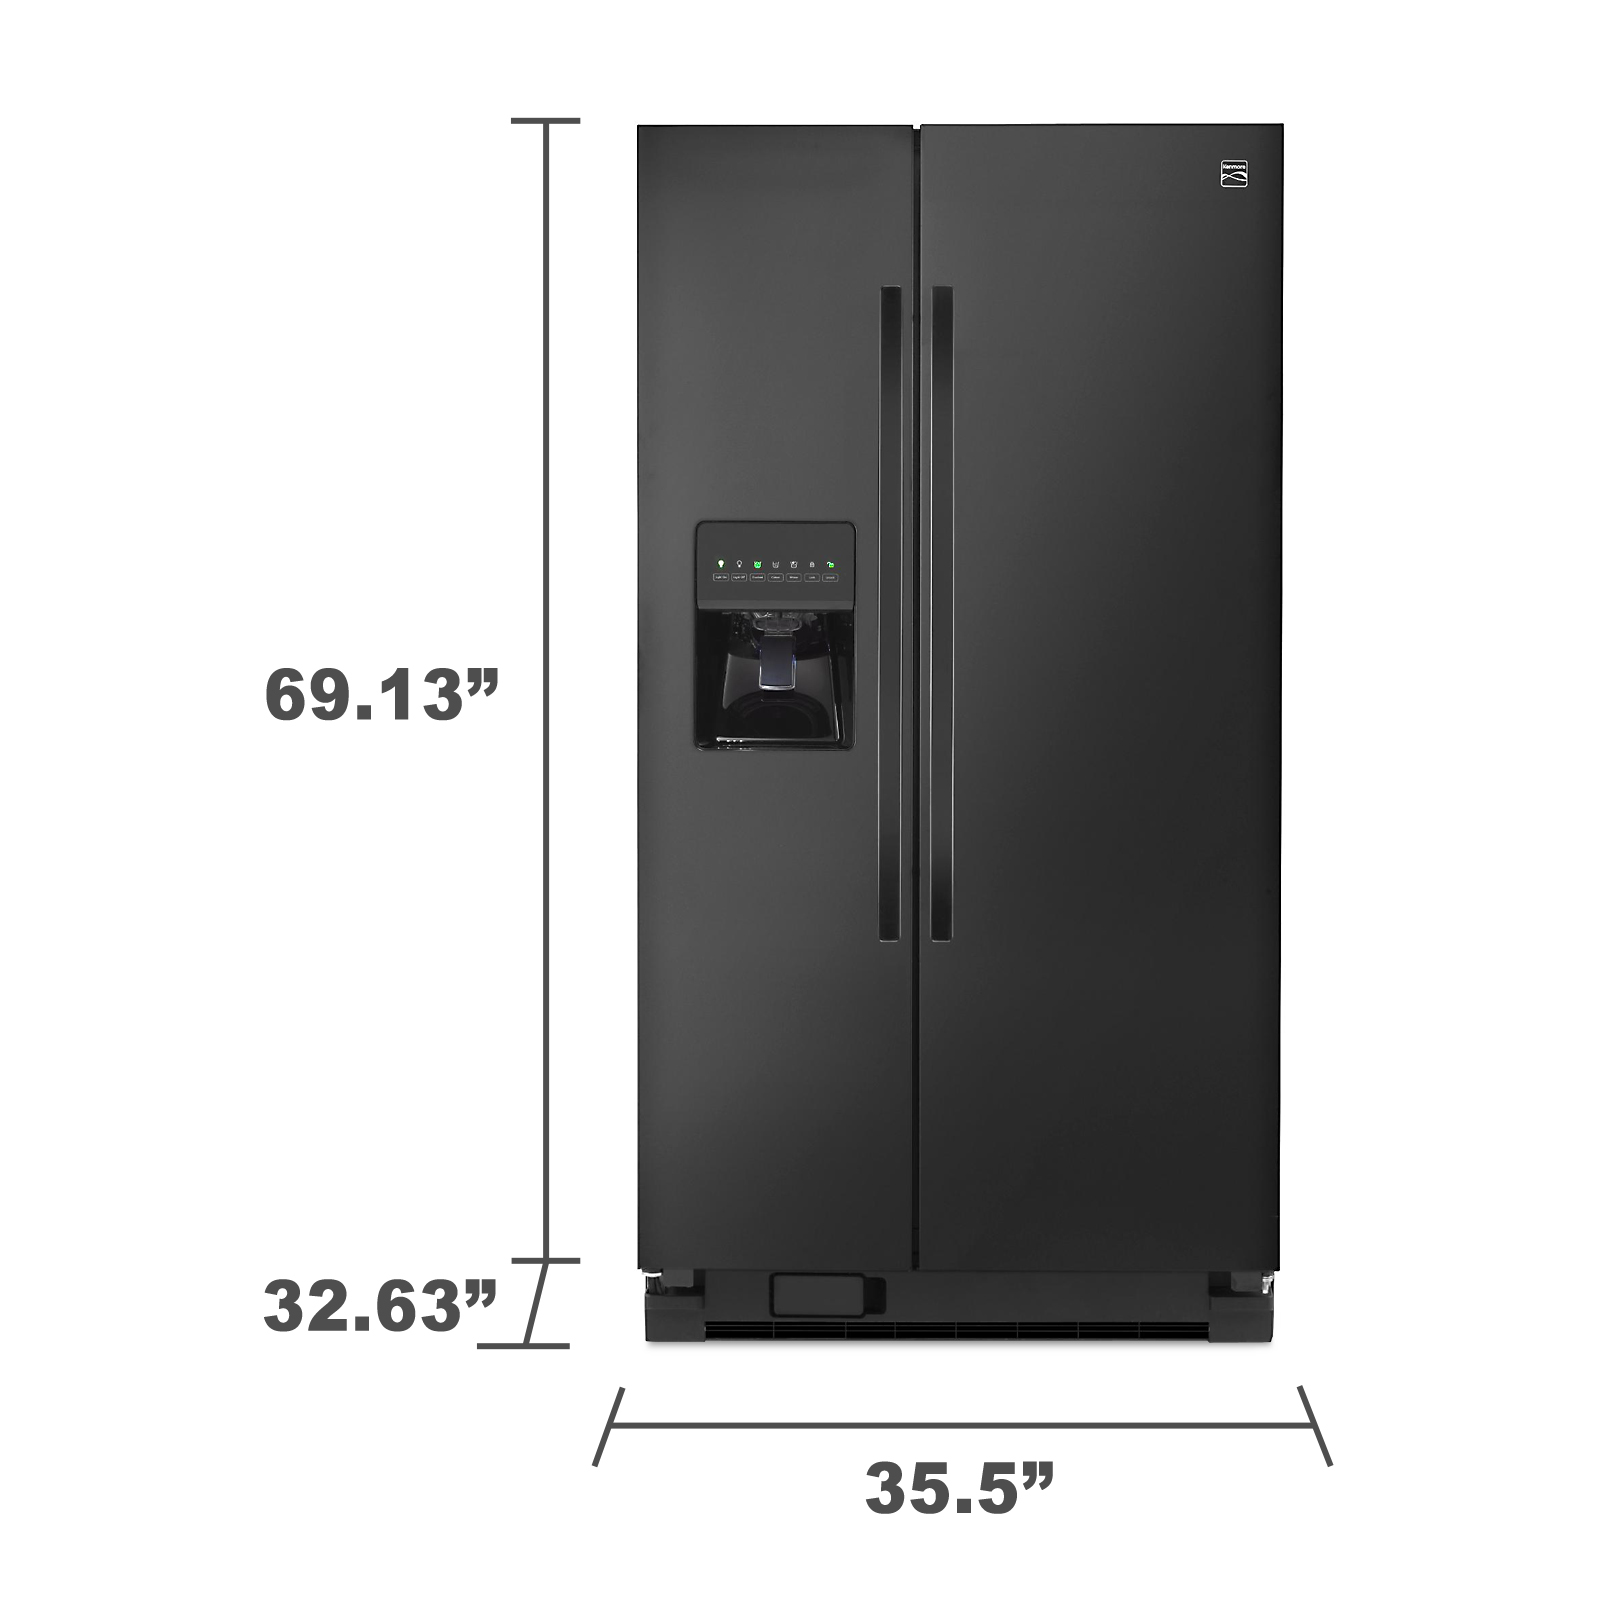 Kenmore 51129 25 cu. ft. Side-by-Side Refrigerator - Black